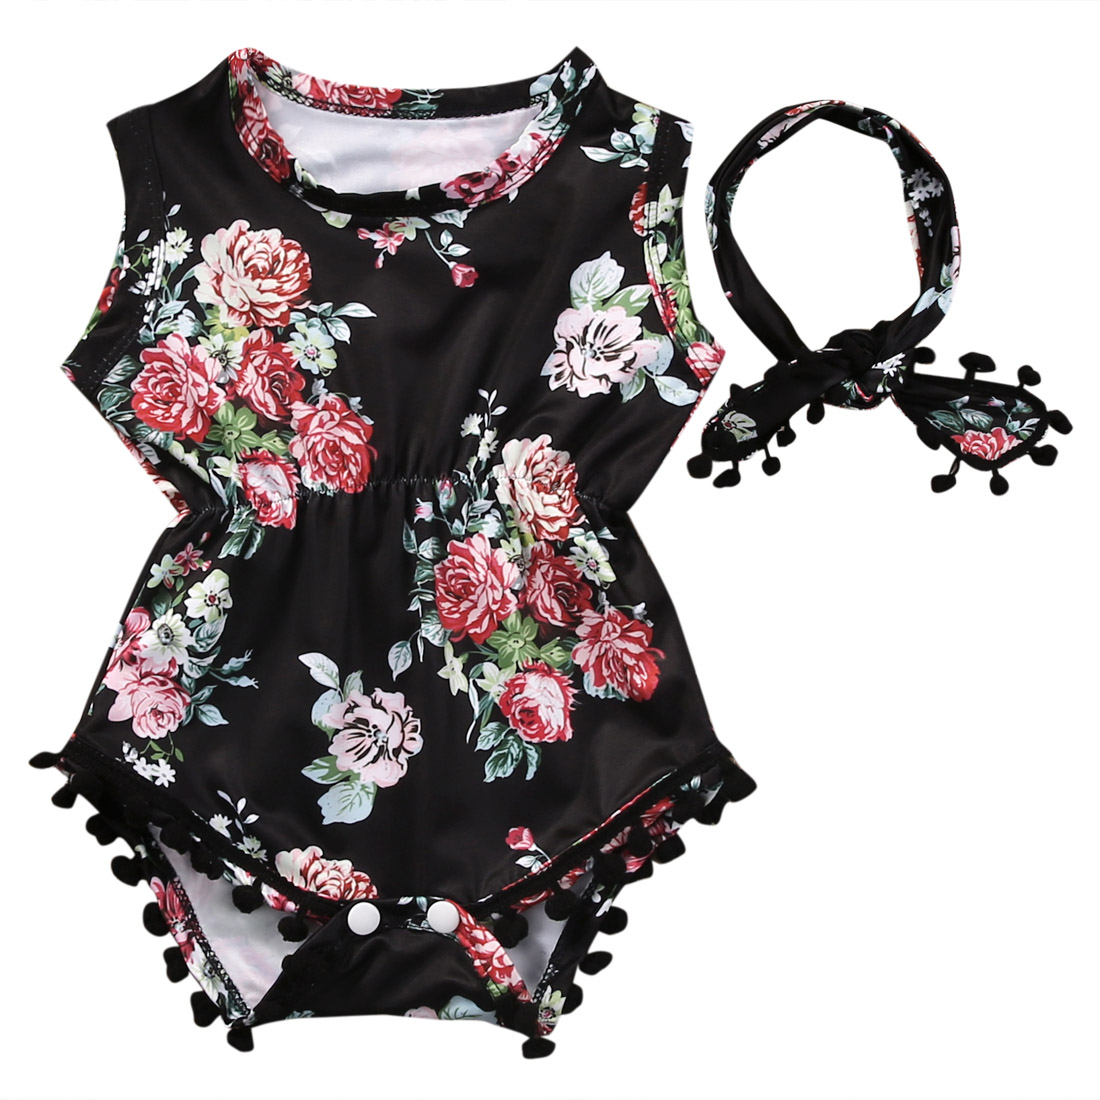 6e4409ab4 Detail Feedback Questions about Adorable Floral Baby Girls Romper One pieces  Sunsuit Outfit Clothes on Aliexpress.com | alibaba group